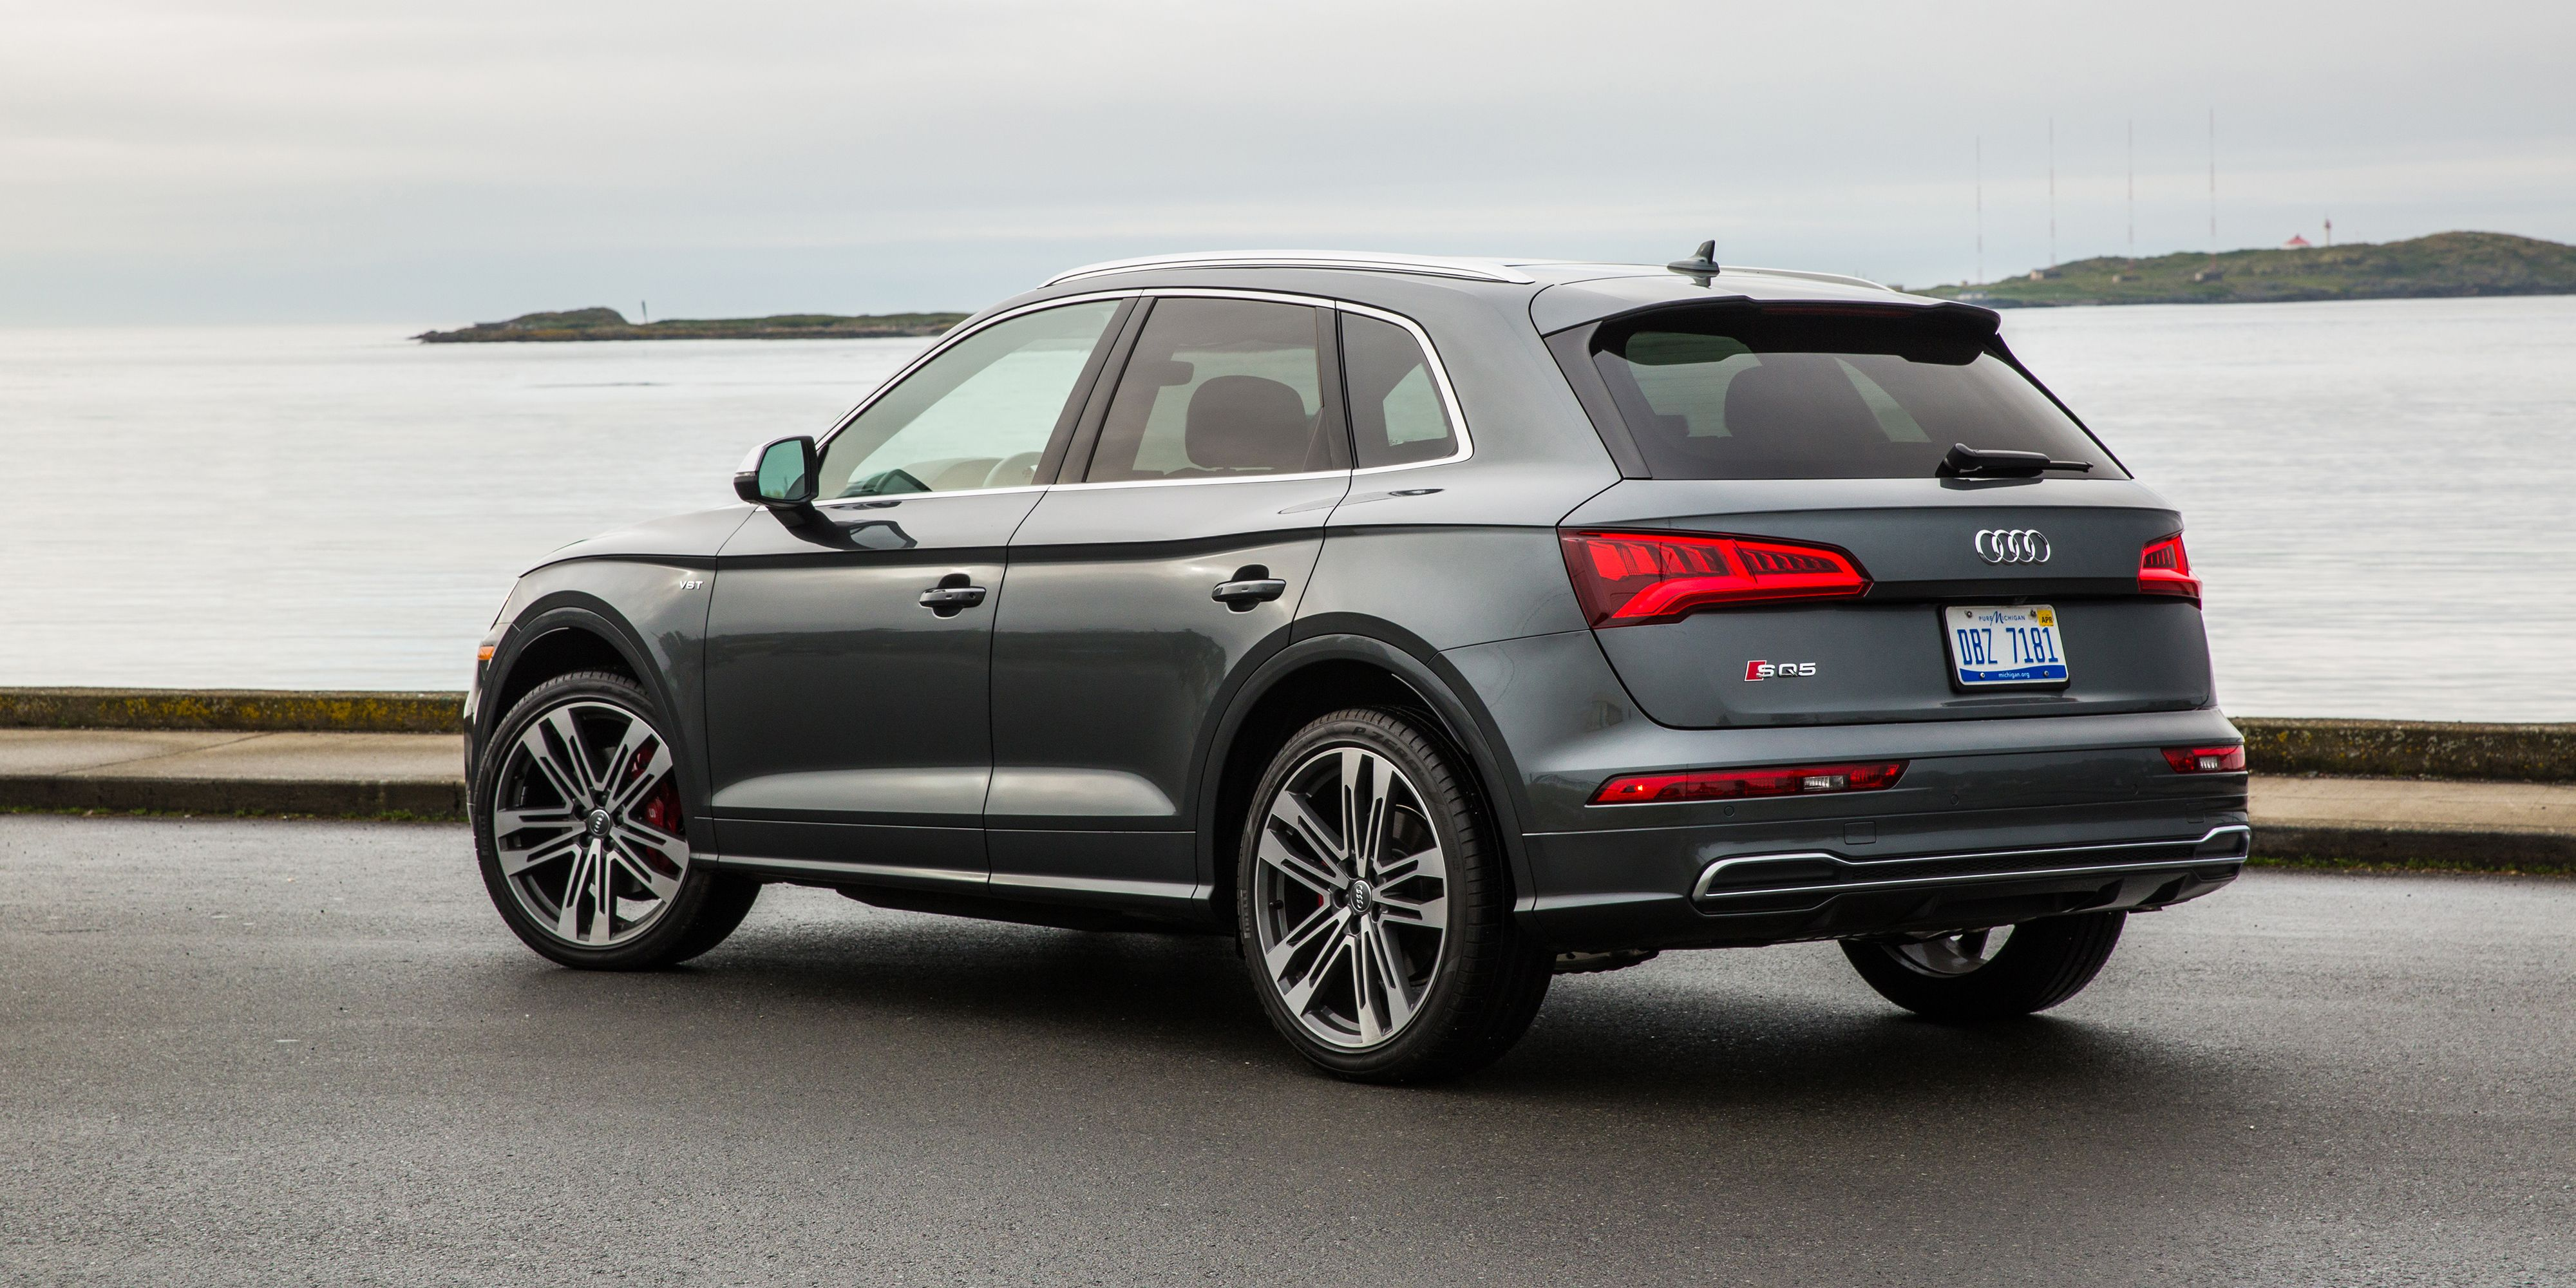 The Audi Sq5 Is What This Generation S Muscle Car Looks Like